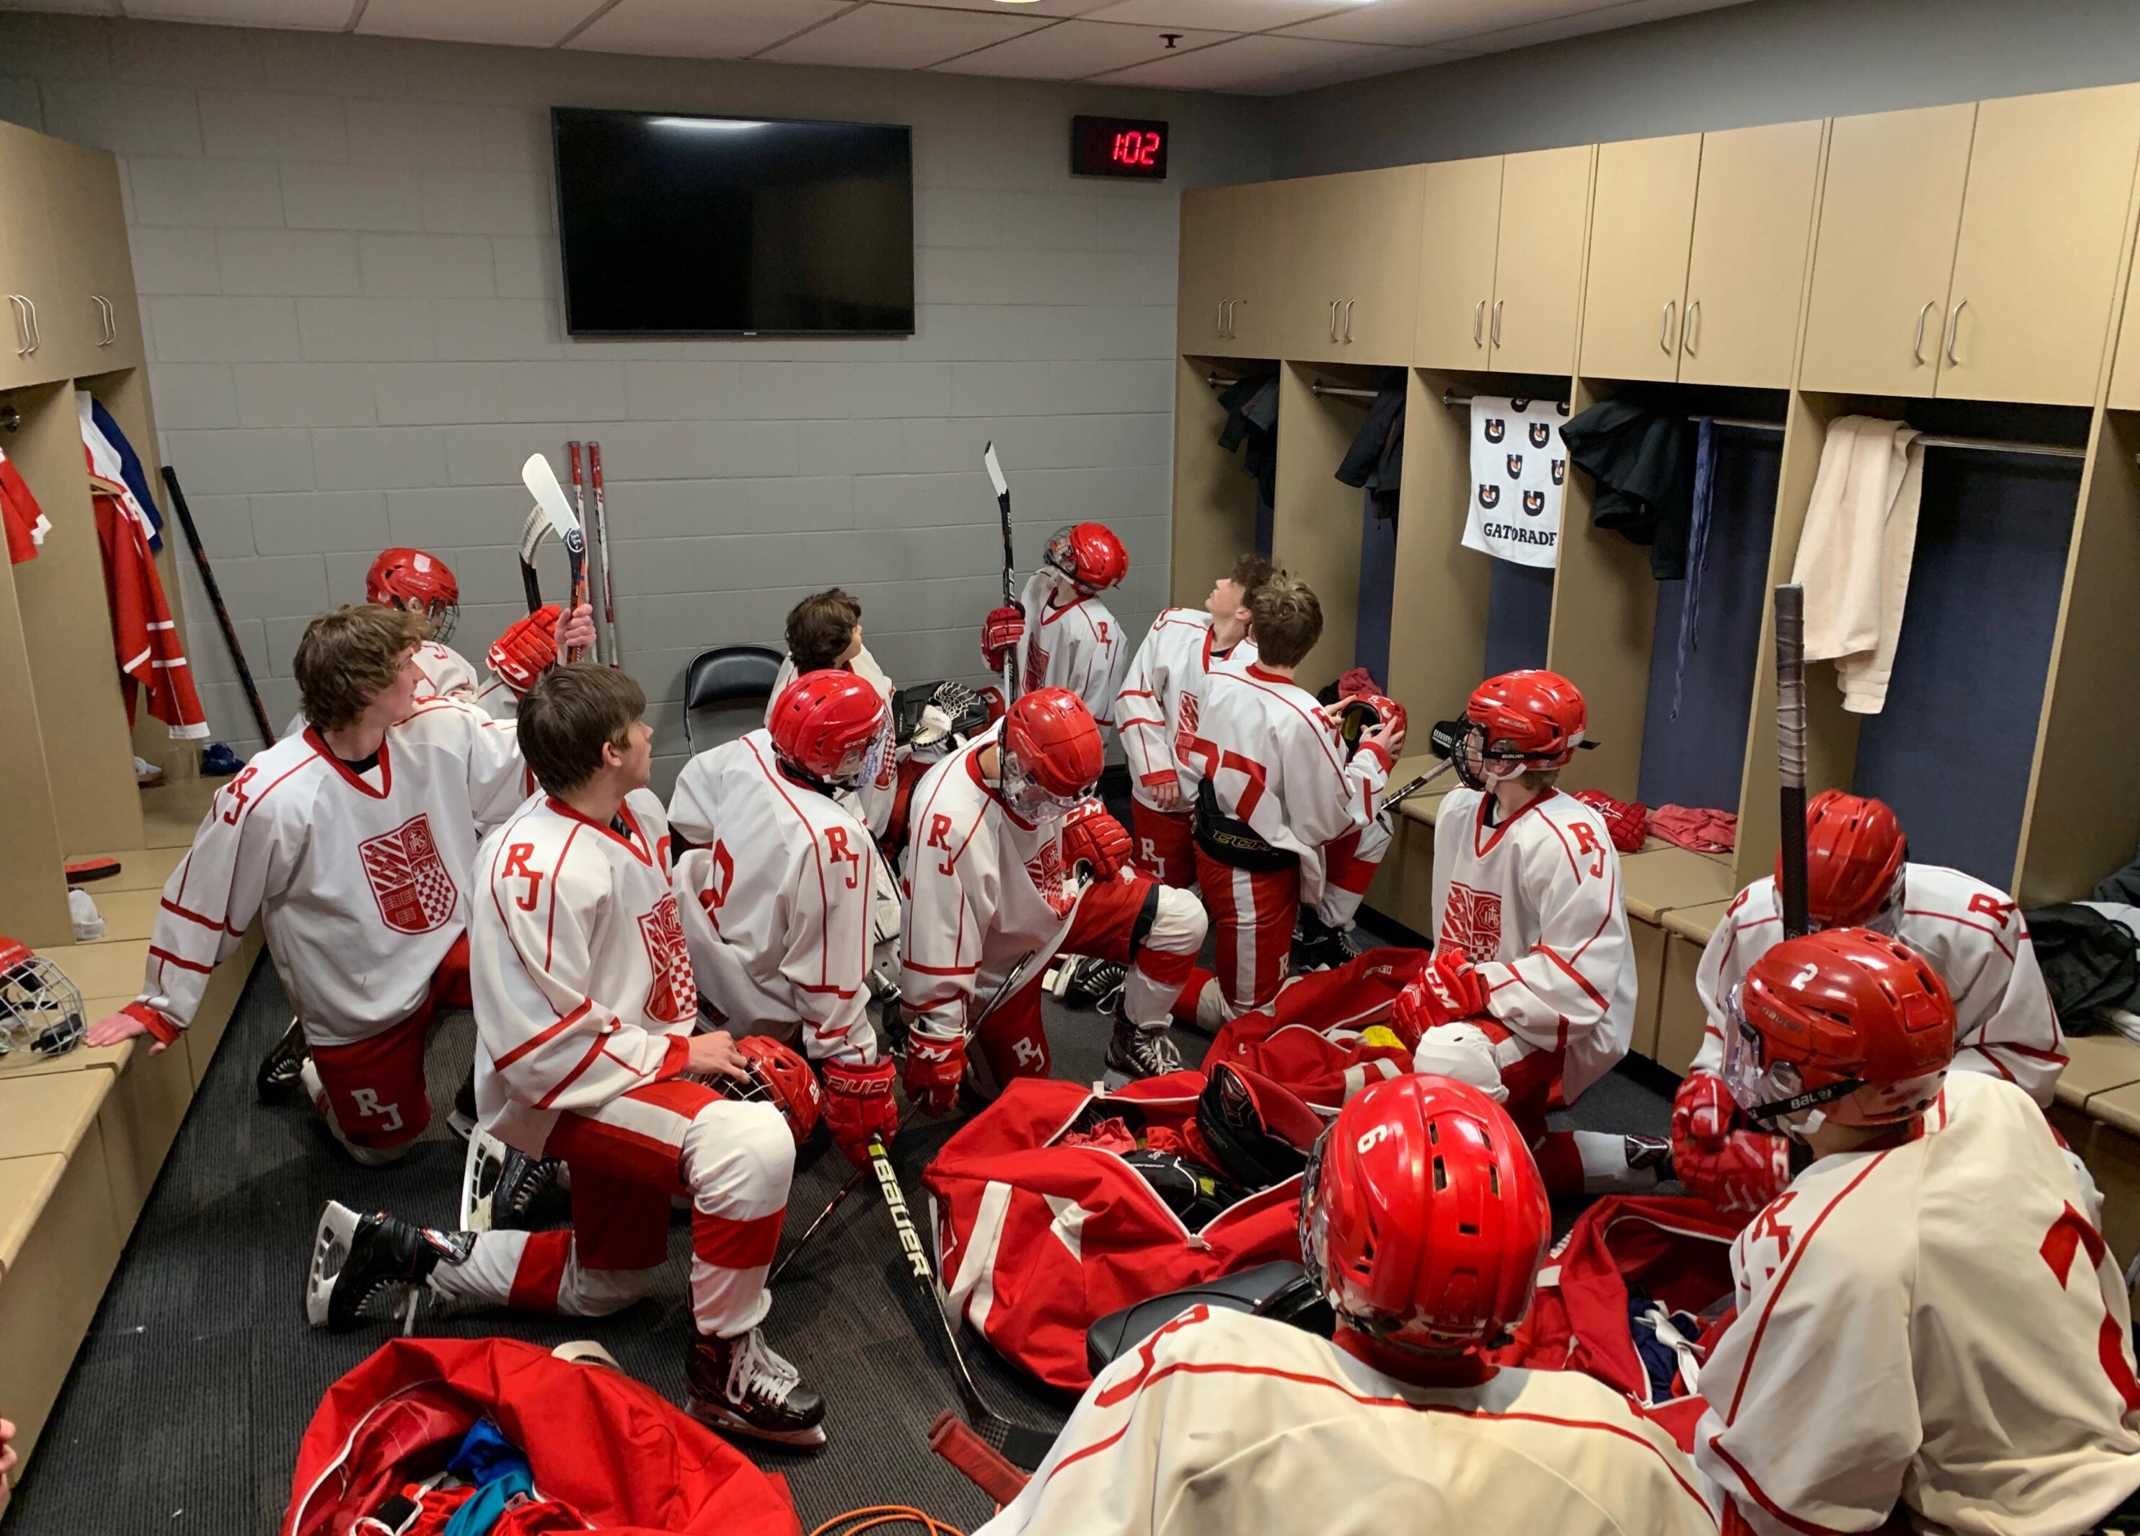 Regis JV hockey team preparing for state.